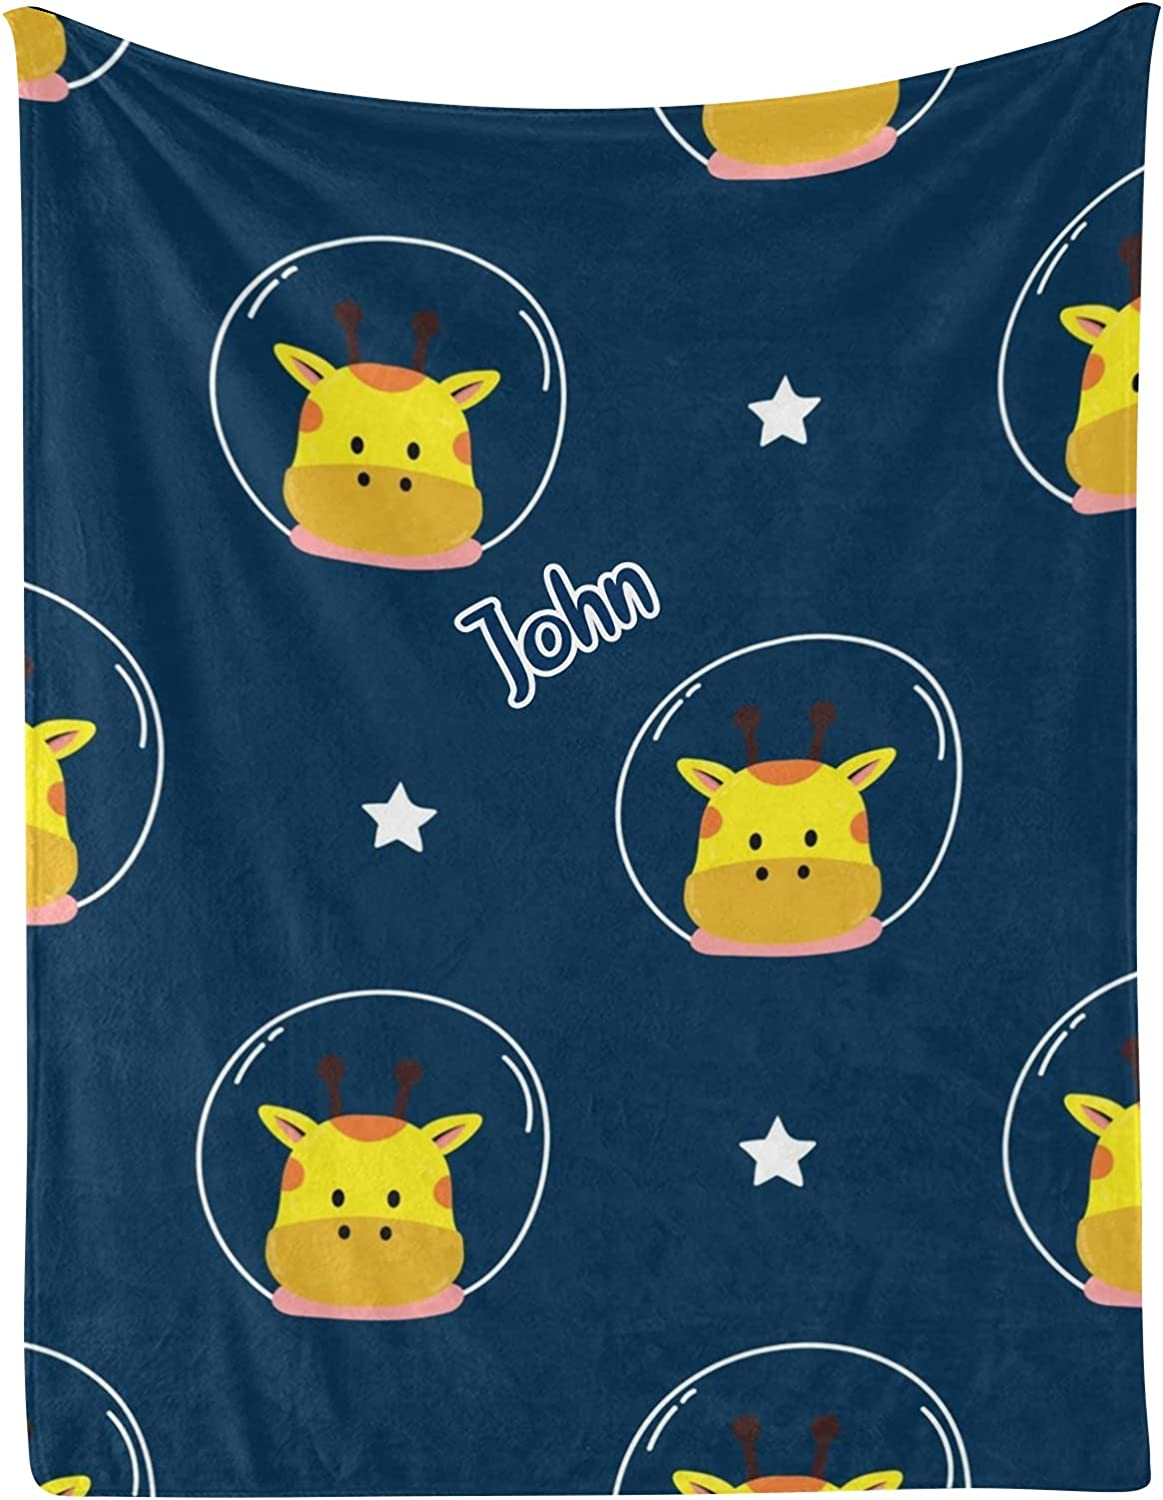 Cute Space Giraffe Star Personalized Baby Popular standard Blankets Name with New sales 30x